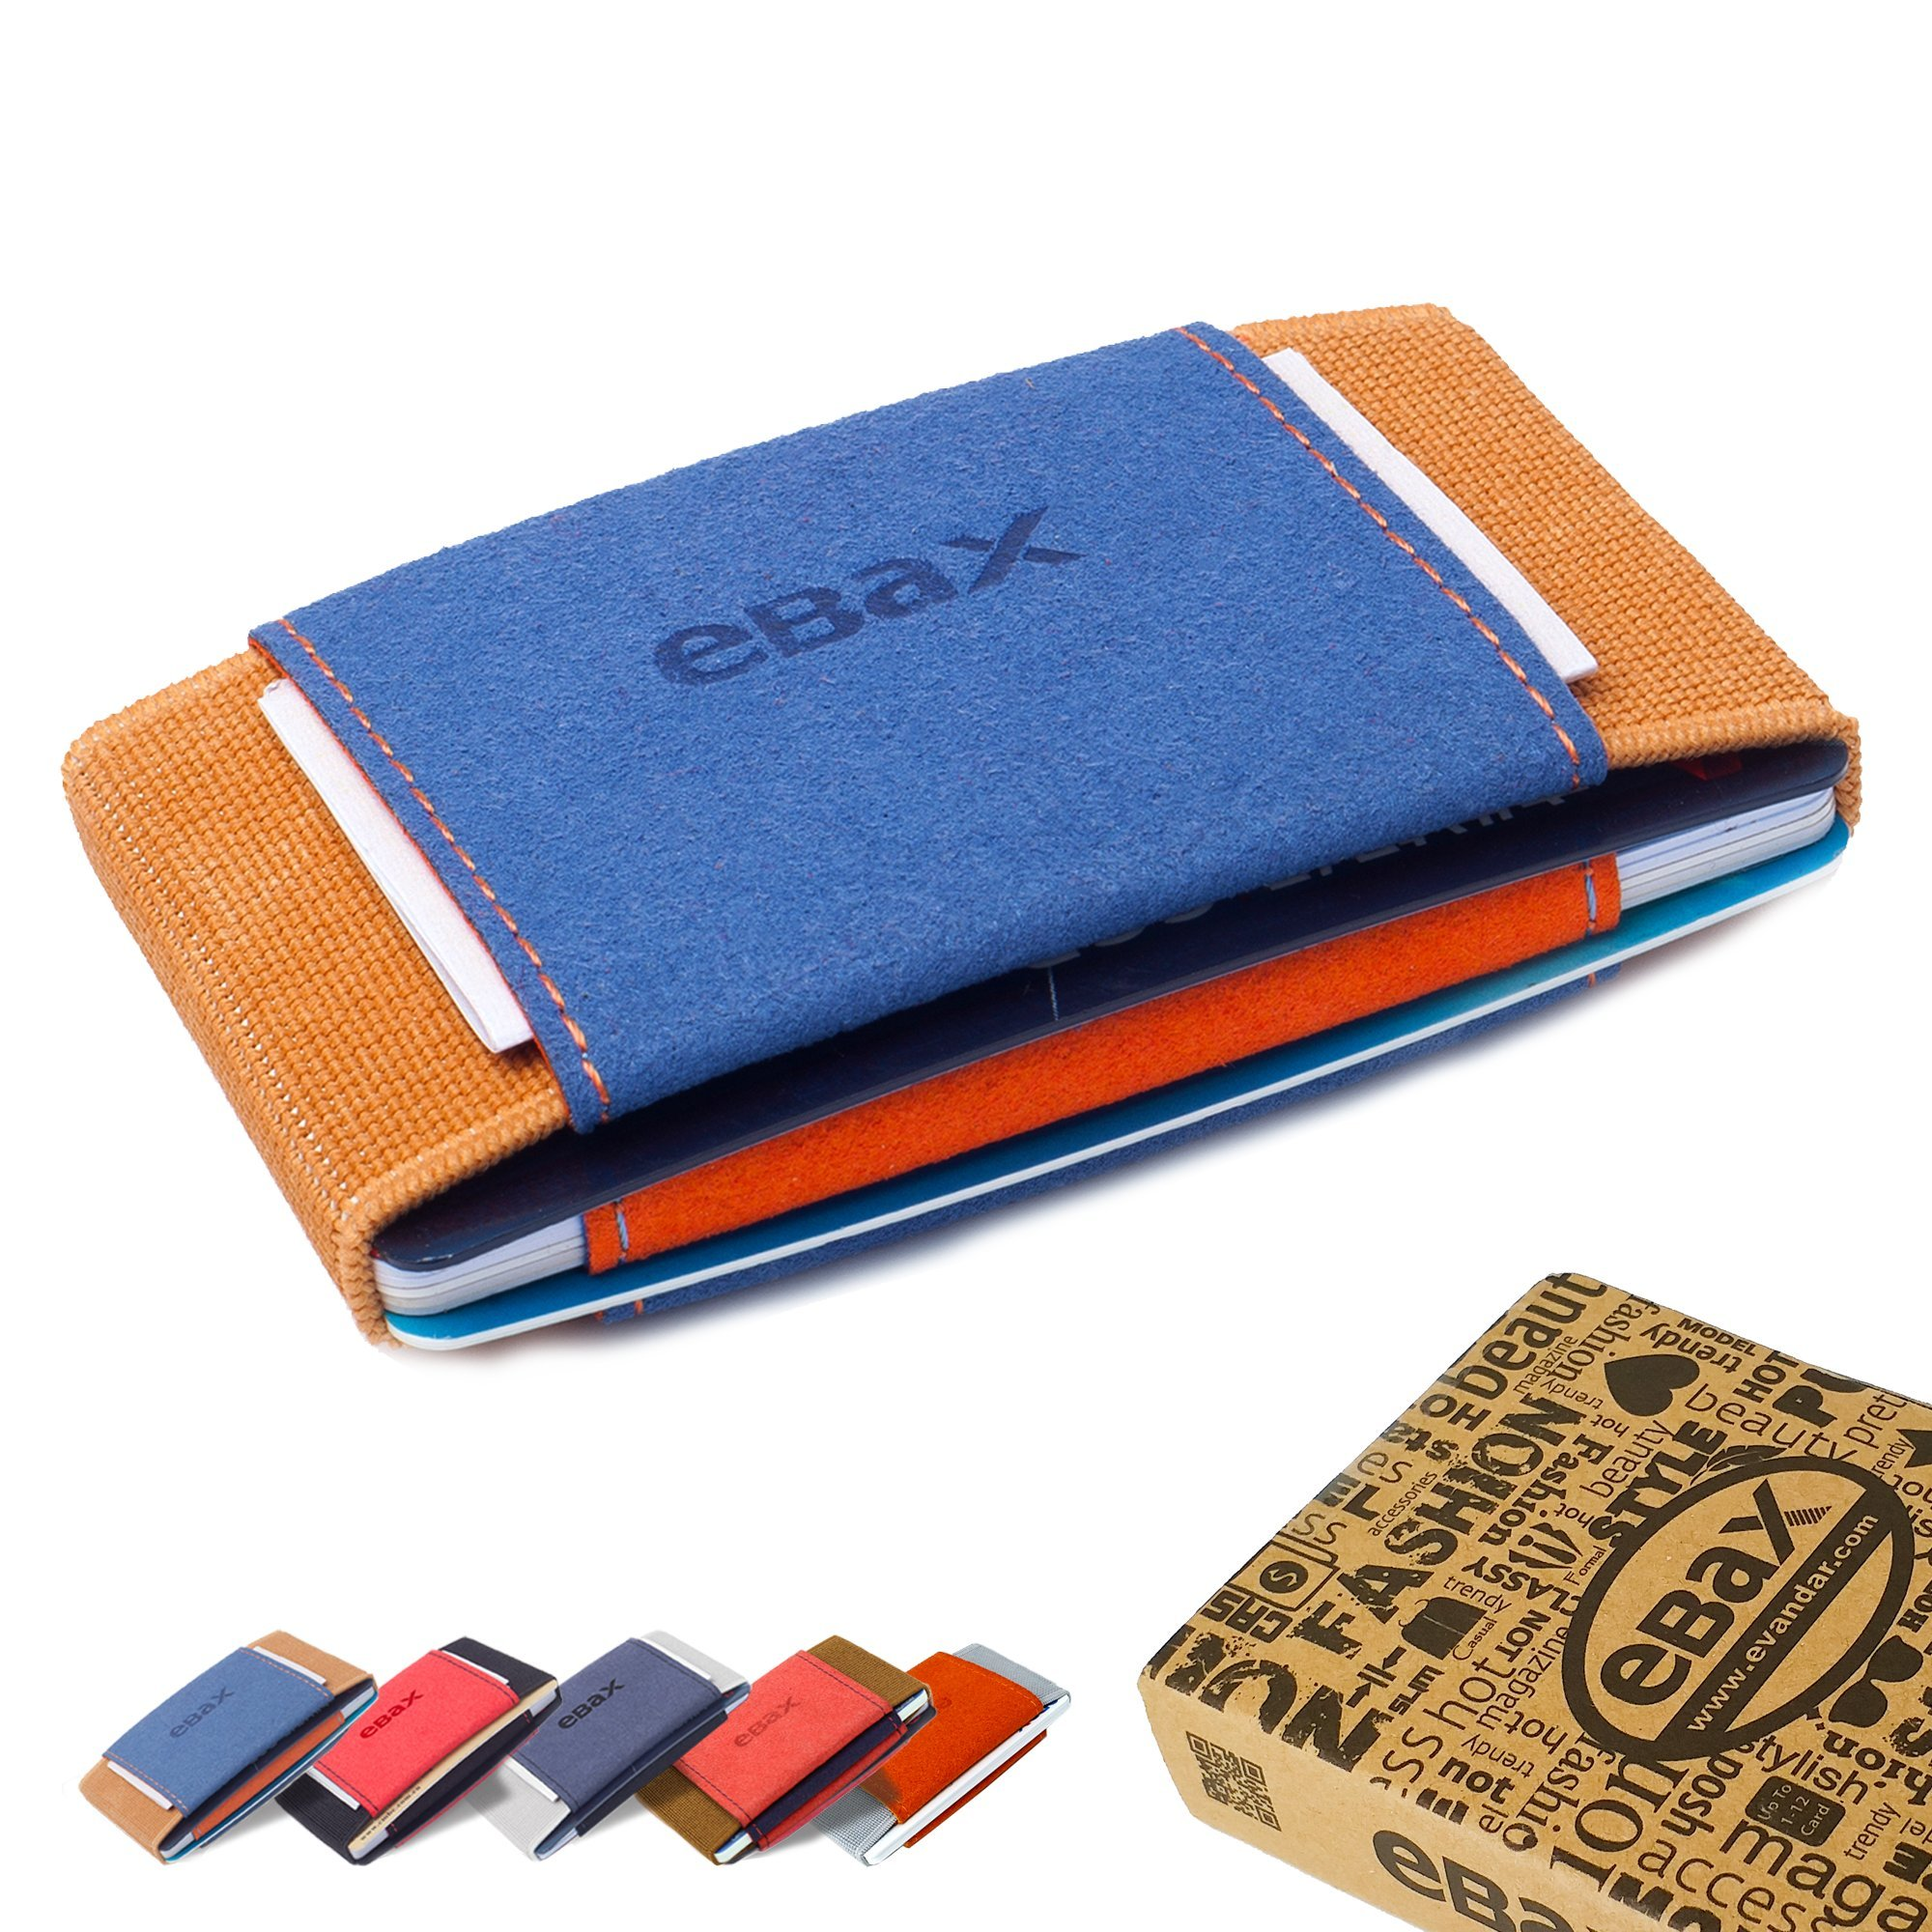 Ebax Minimalist Slim Wallet For Men Women Elastic Front Pocket Credit Card